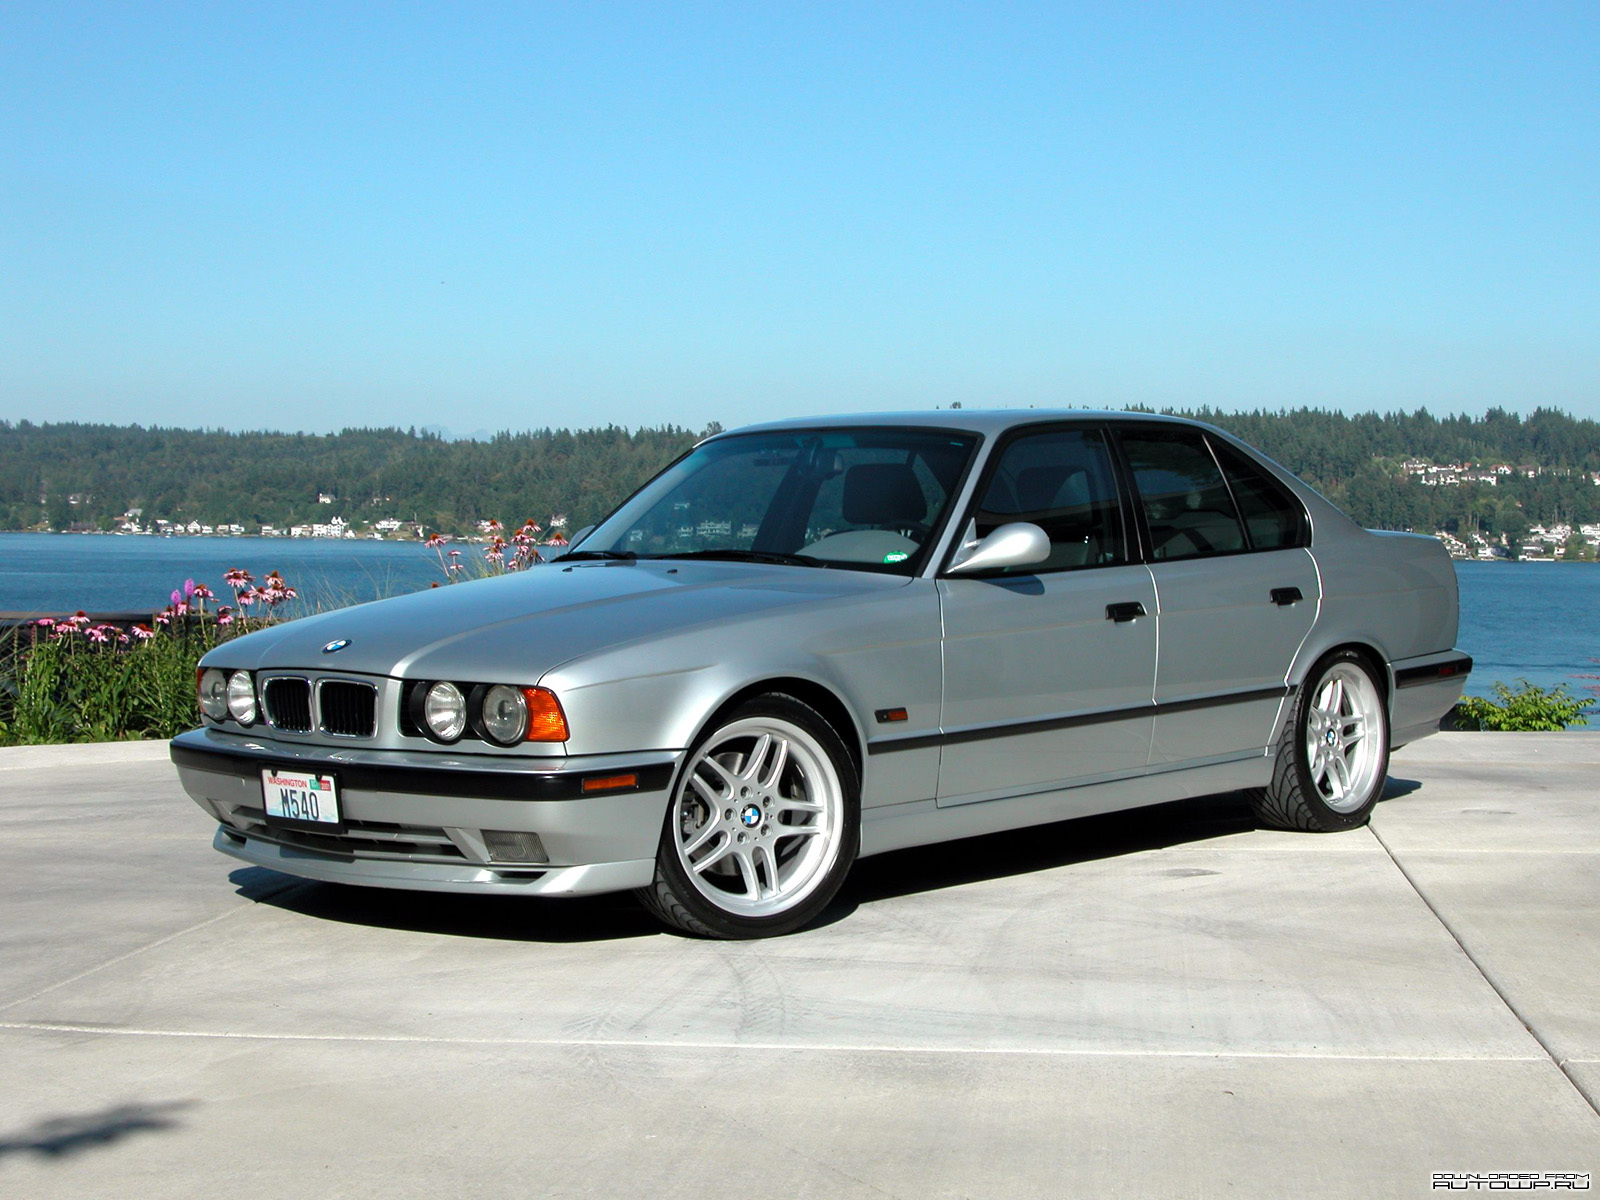 bmw m5 e34 photos photogallery with 19 pics. Black Bedroom Furniture Sets. Home Design Ideas